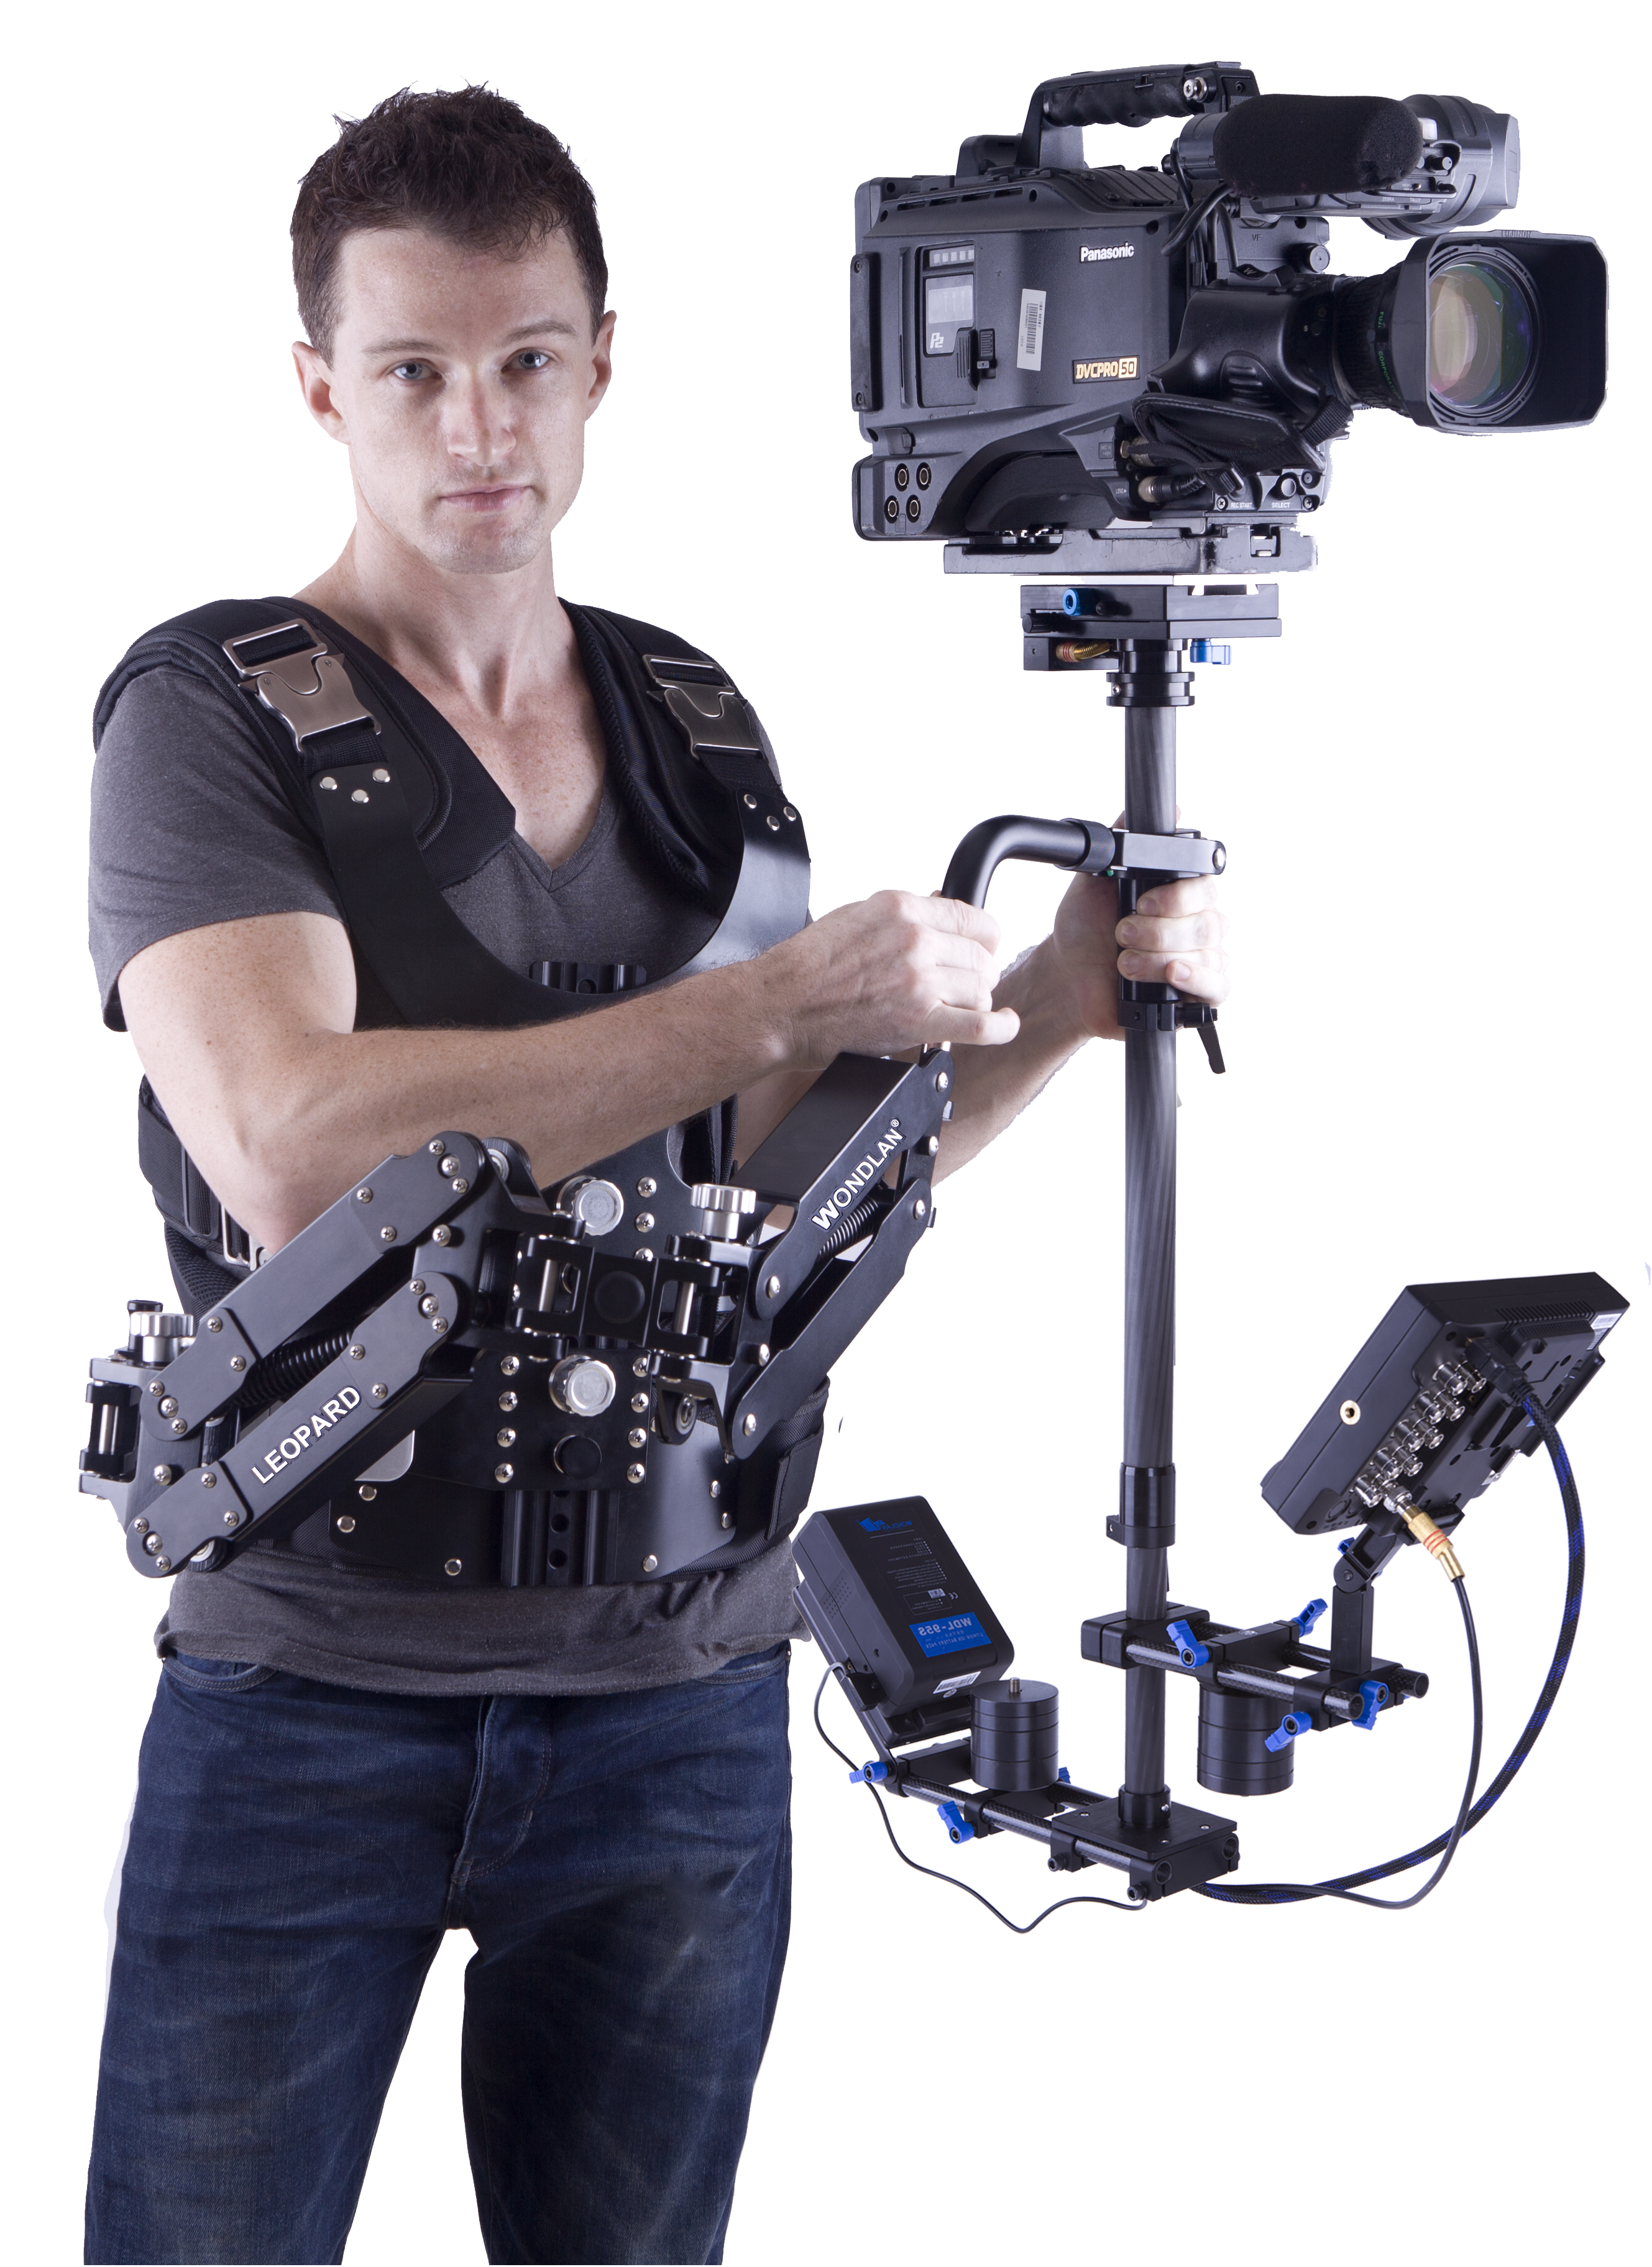 drones for filming with Steadycam Leopard Iv Deluxe Le402 on respond moreover abovebarbados additionally Bartel Grassland in addition Gallery likewise Remove Barrel Distortion Fisheye Effect On Aerial Photos.